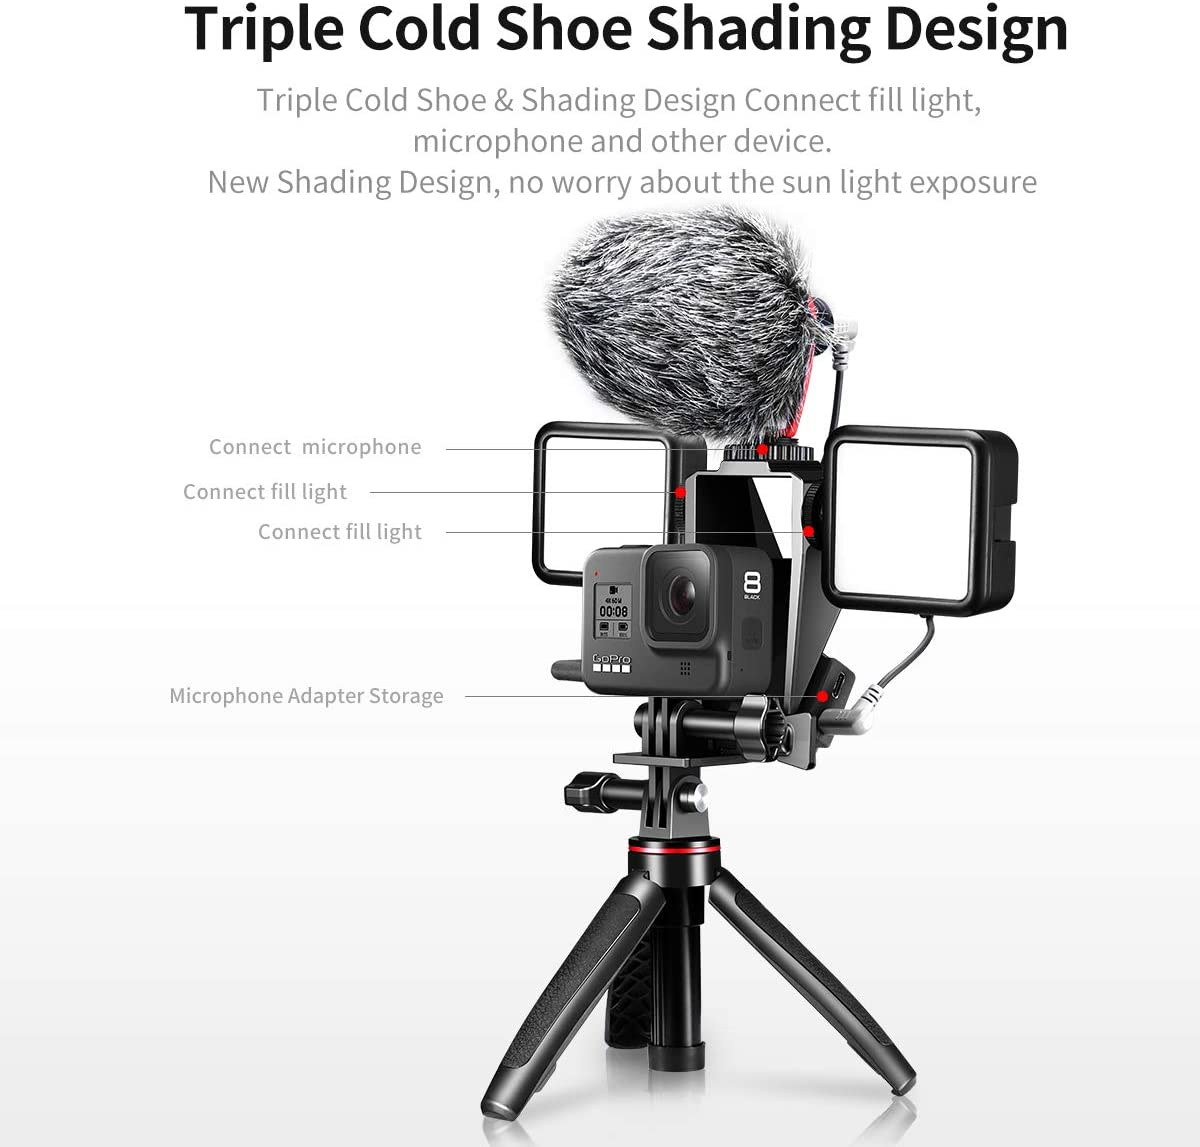 Vlog Selfie Flip Mirror for GoPro 8 Triple Cold Shoe for Microphone LED Video Light Mounting for GoPro Hero 8 Video Accessories Patent Audio Adapter Storage